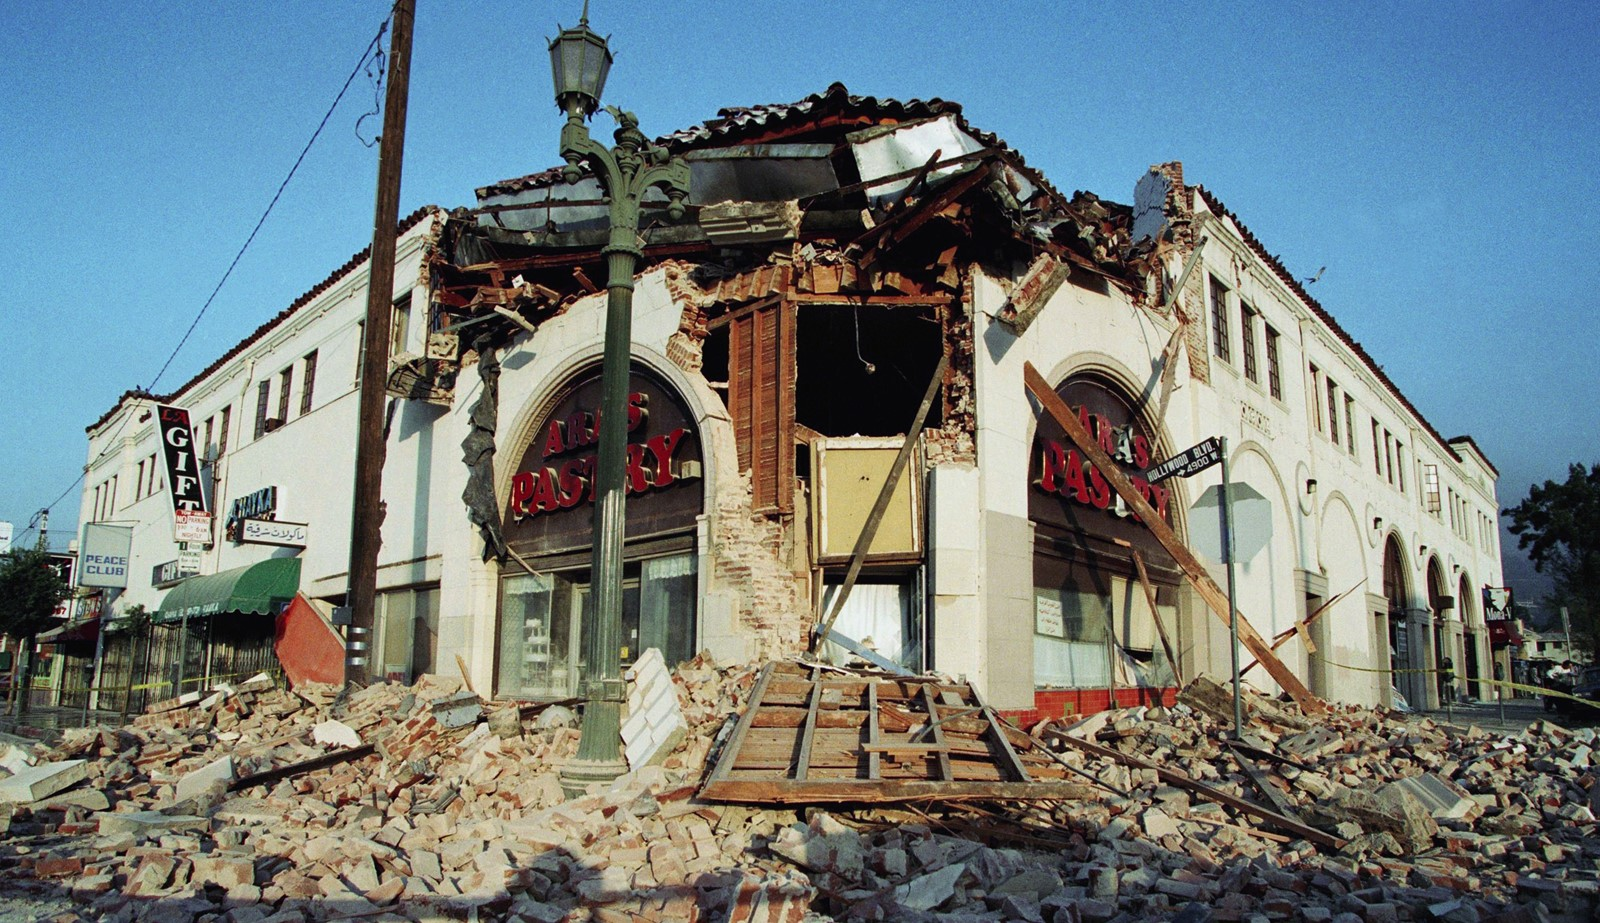 Print California is in an exceptional quake drought Seismologists issue